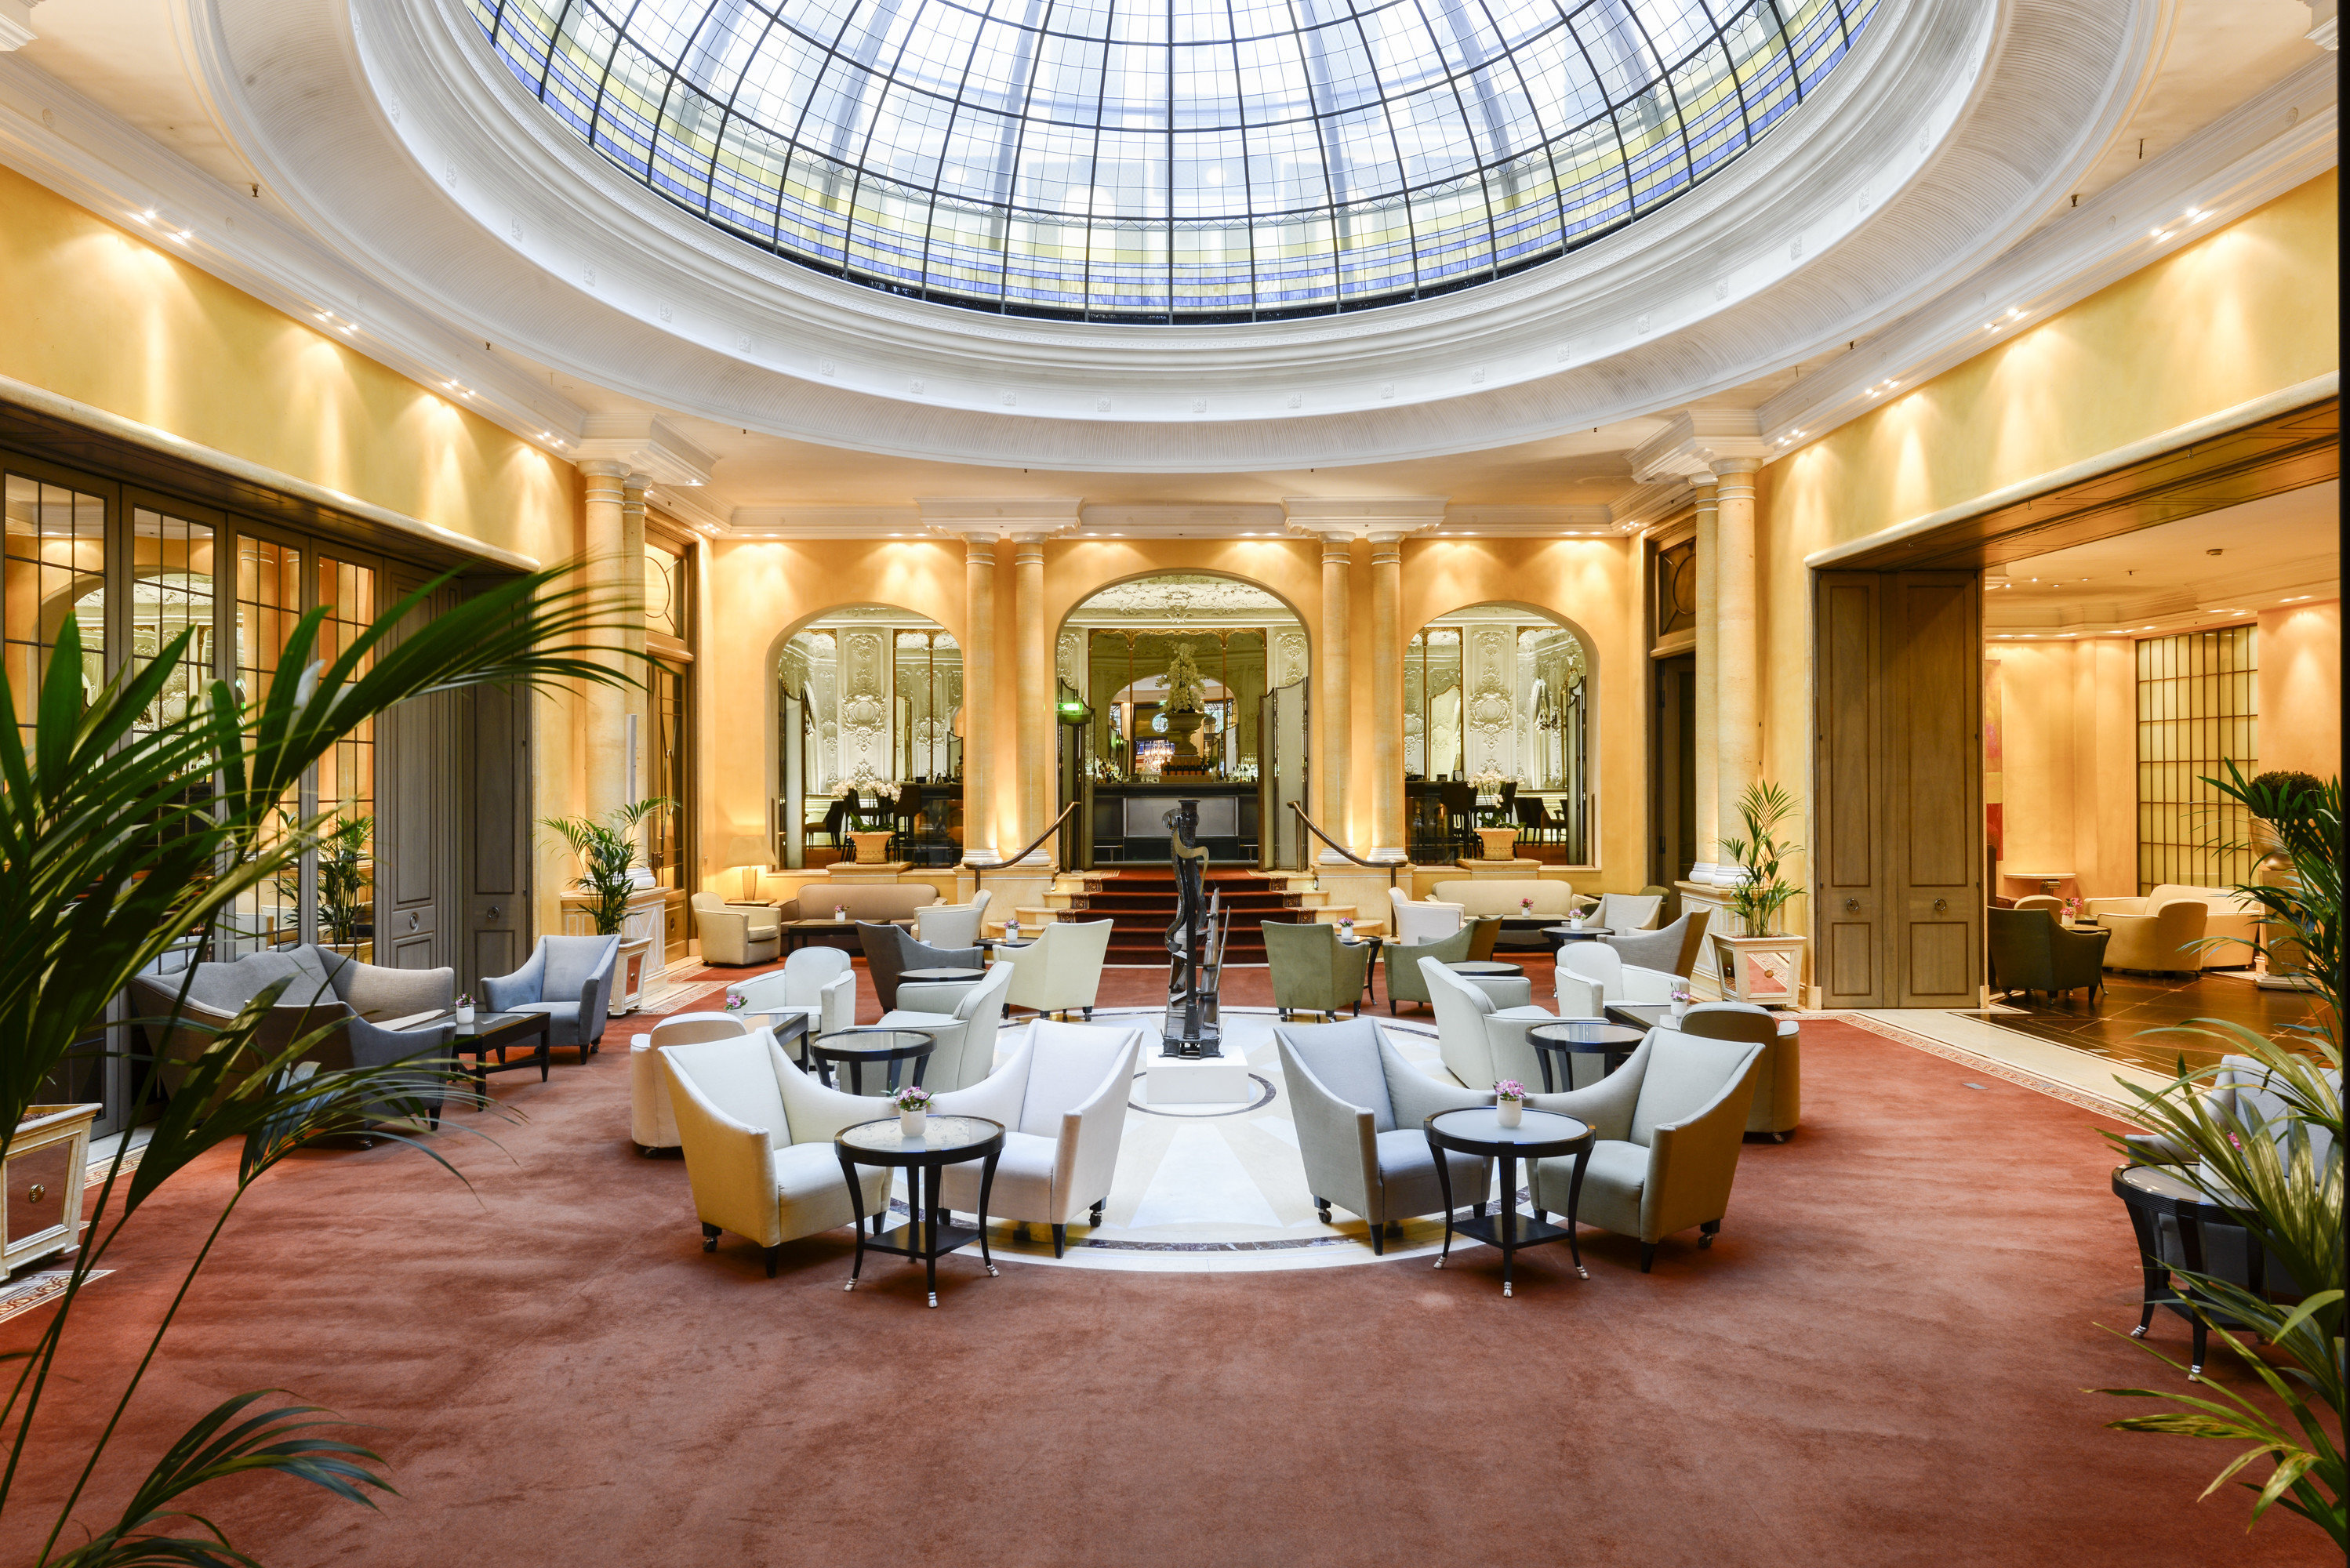 europe Germany Hotels Munich indoor ceiling floor room window Lobby Living interior design furniture estate function hall real estate living room daylighting restaurant apartment plant several